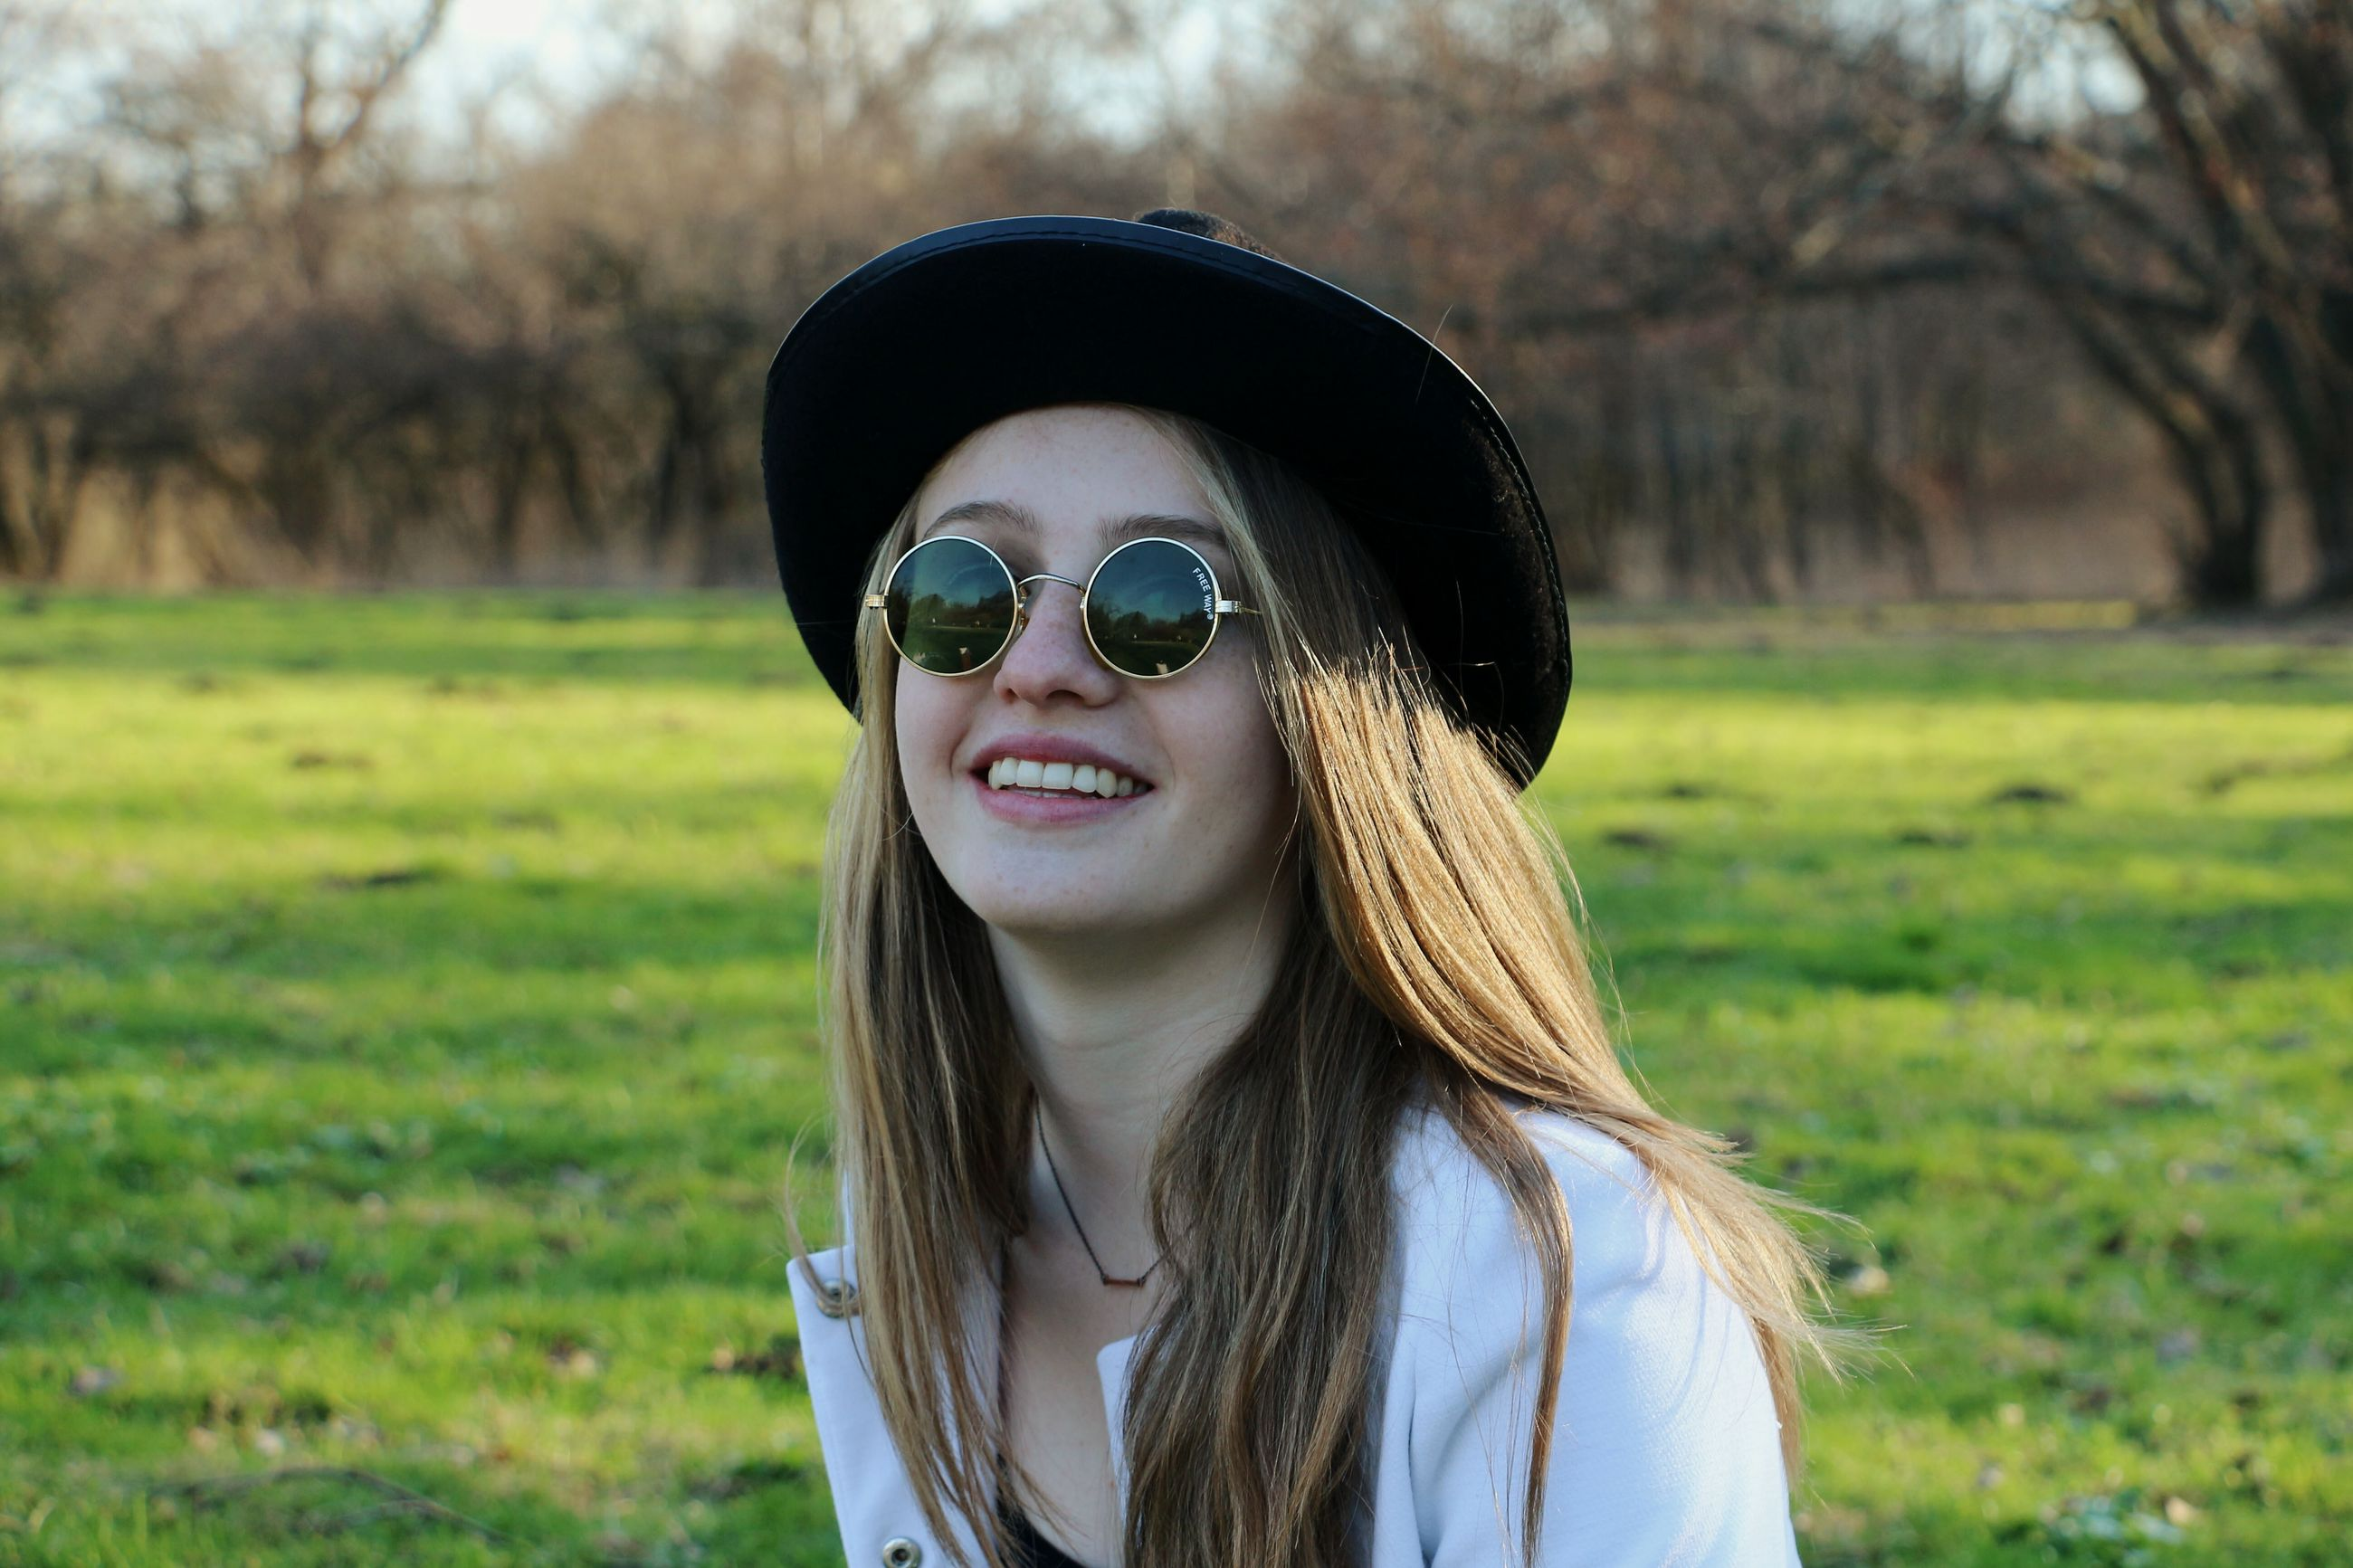 portrait, looking at camera, young adult, focus on foreground, person, front view, lifestyles, sunglasses, smiling, leisure activity, young women, casual clothing, headshot, grass, happiness, field, close-up